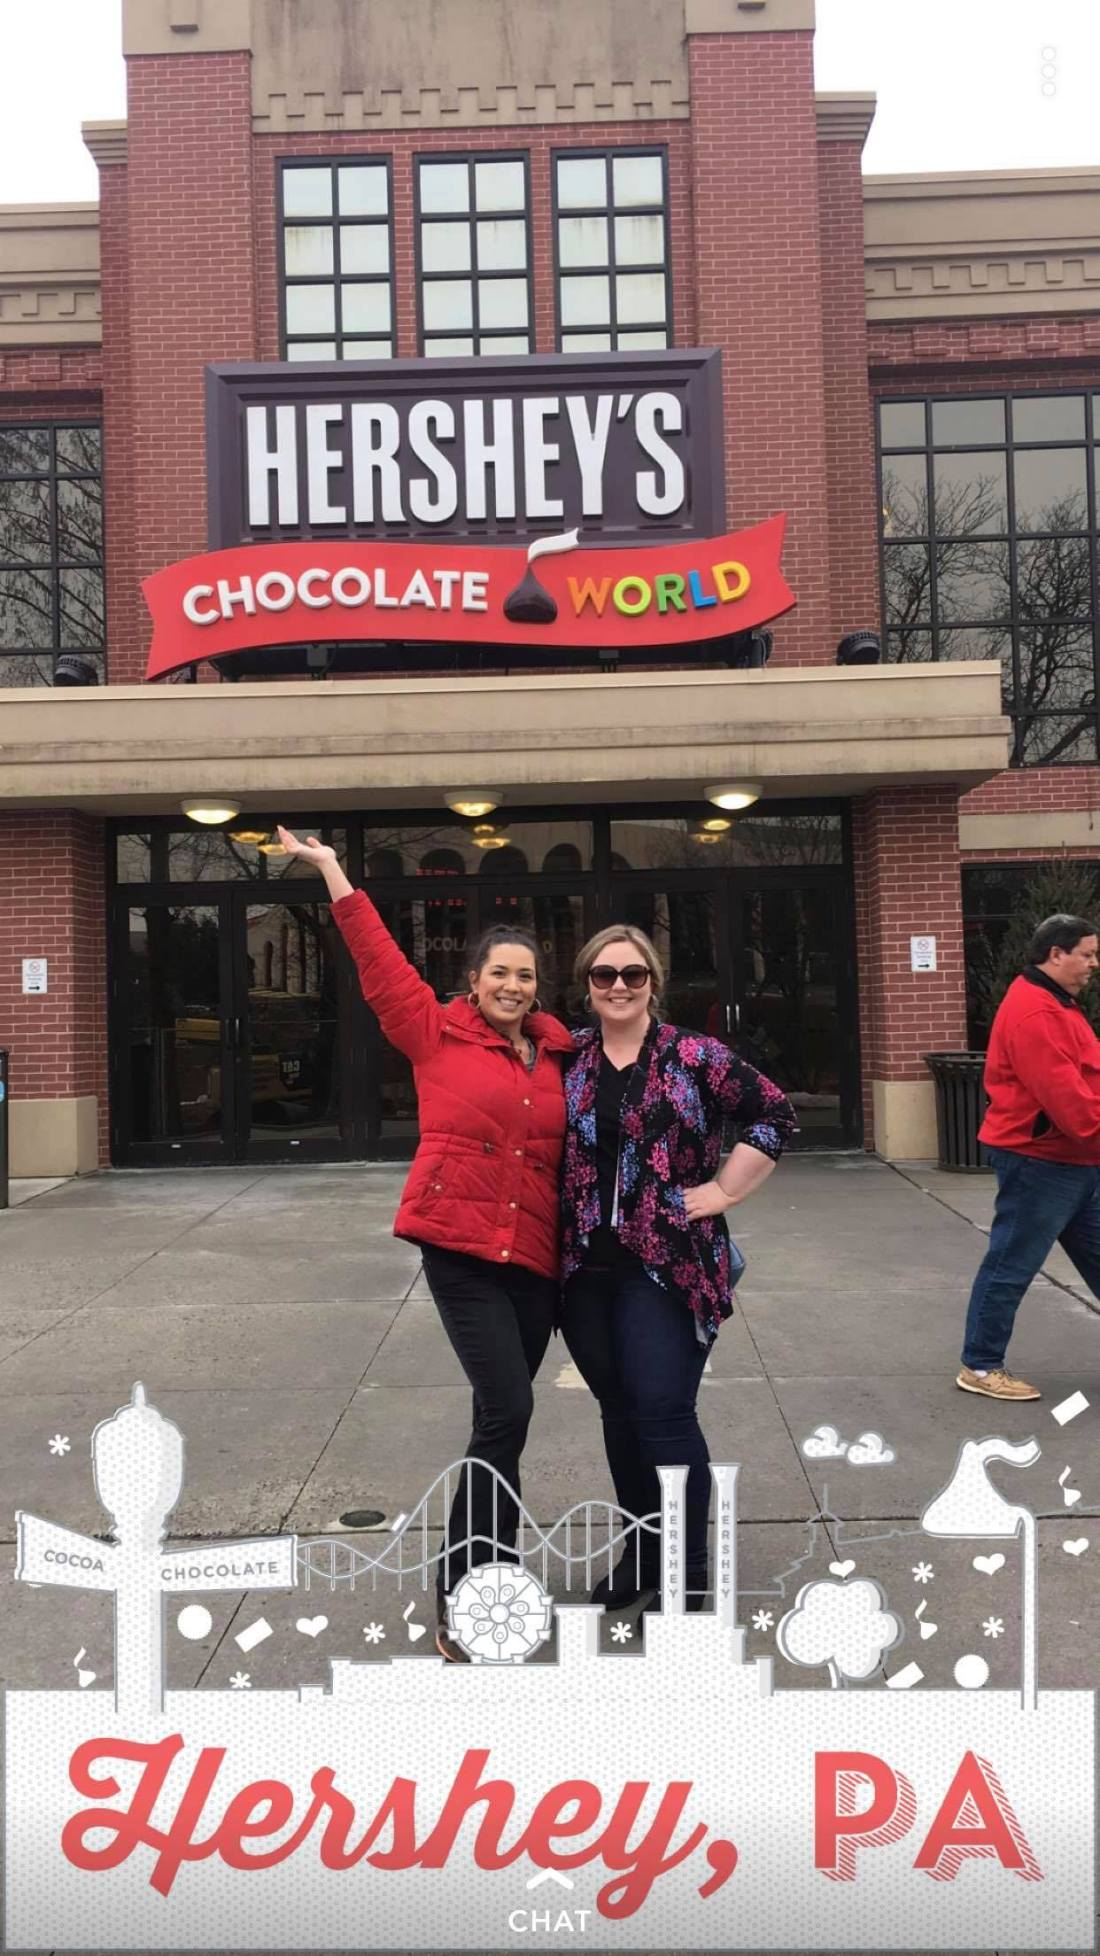 Jay Danielle Chocolate World. Spend a day at one of the worlds largest candy stores. Filled with with worlds largest candies Chocolate World and packed with family friendly fun filled activities.